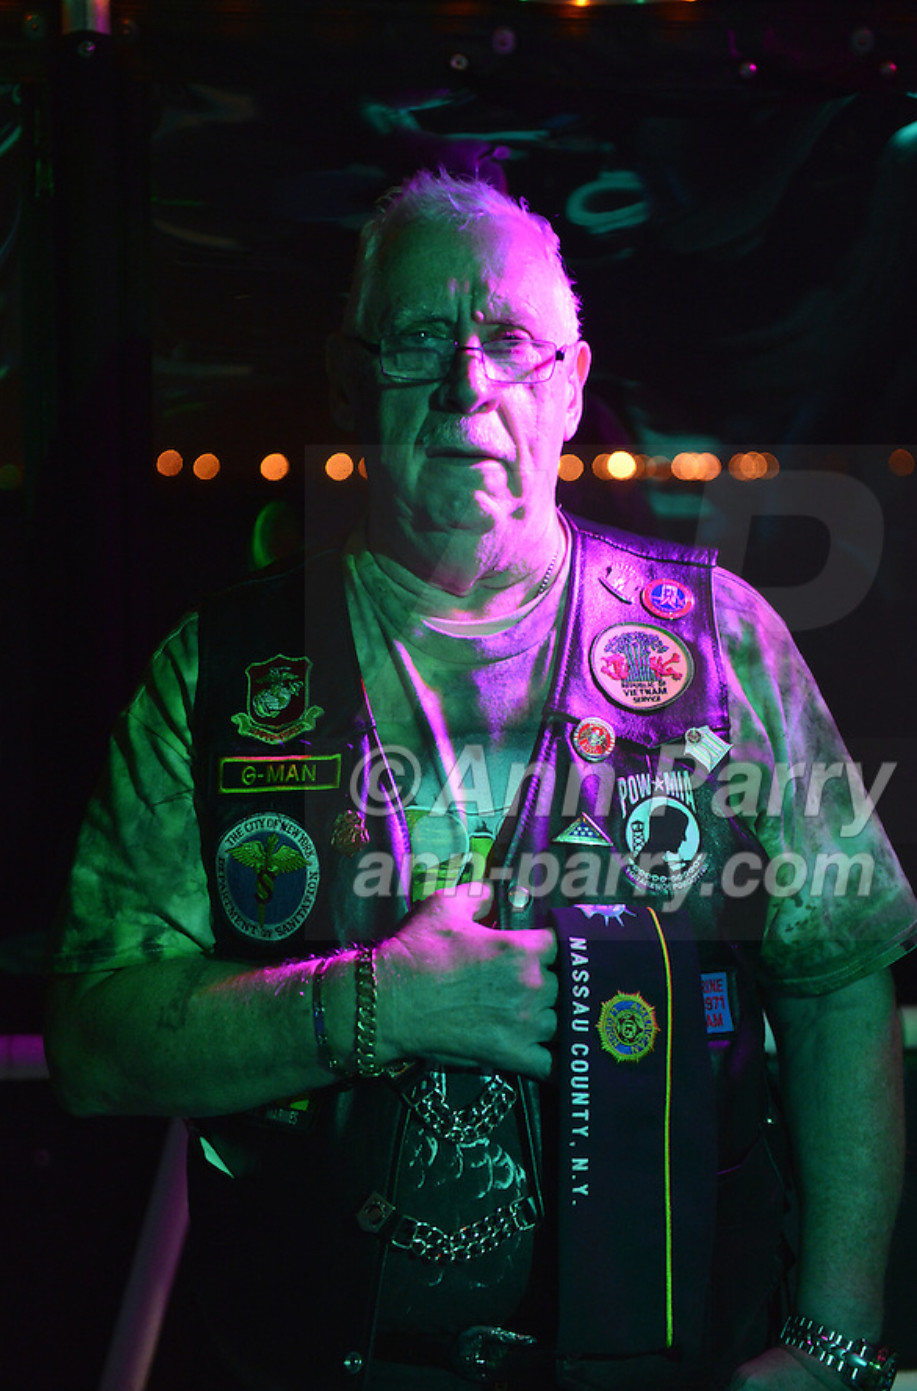 Freeport, NY, USA. 10th Sept. 2014. FRANK NEAL, of Hempstead, an American Legion Riders Post #1488 member, holds his hand over his heart while 'Gold Bless America' is sung, at night on board the boat Miss Freeport V, which sailed from the Woodcleft Canal of Freeport Nautical Mile after a dockside remembrance ceremony in honor of victims of the terrorist attacks of September 11 2001.